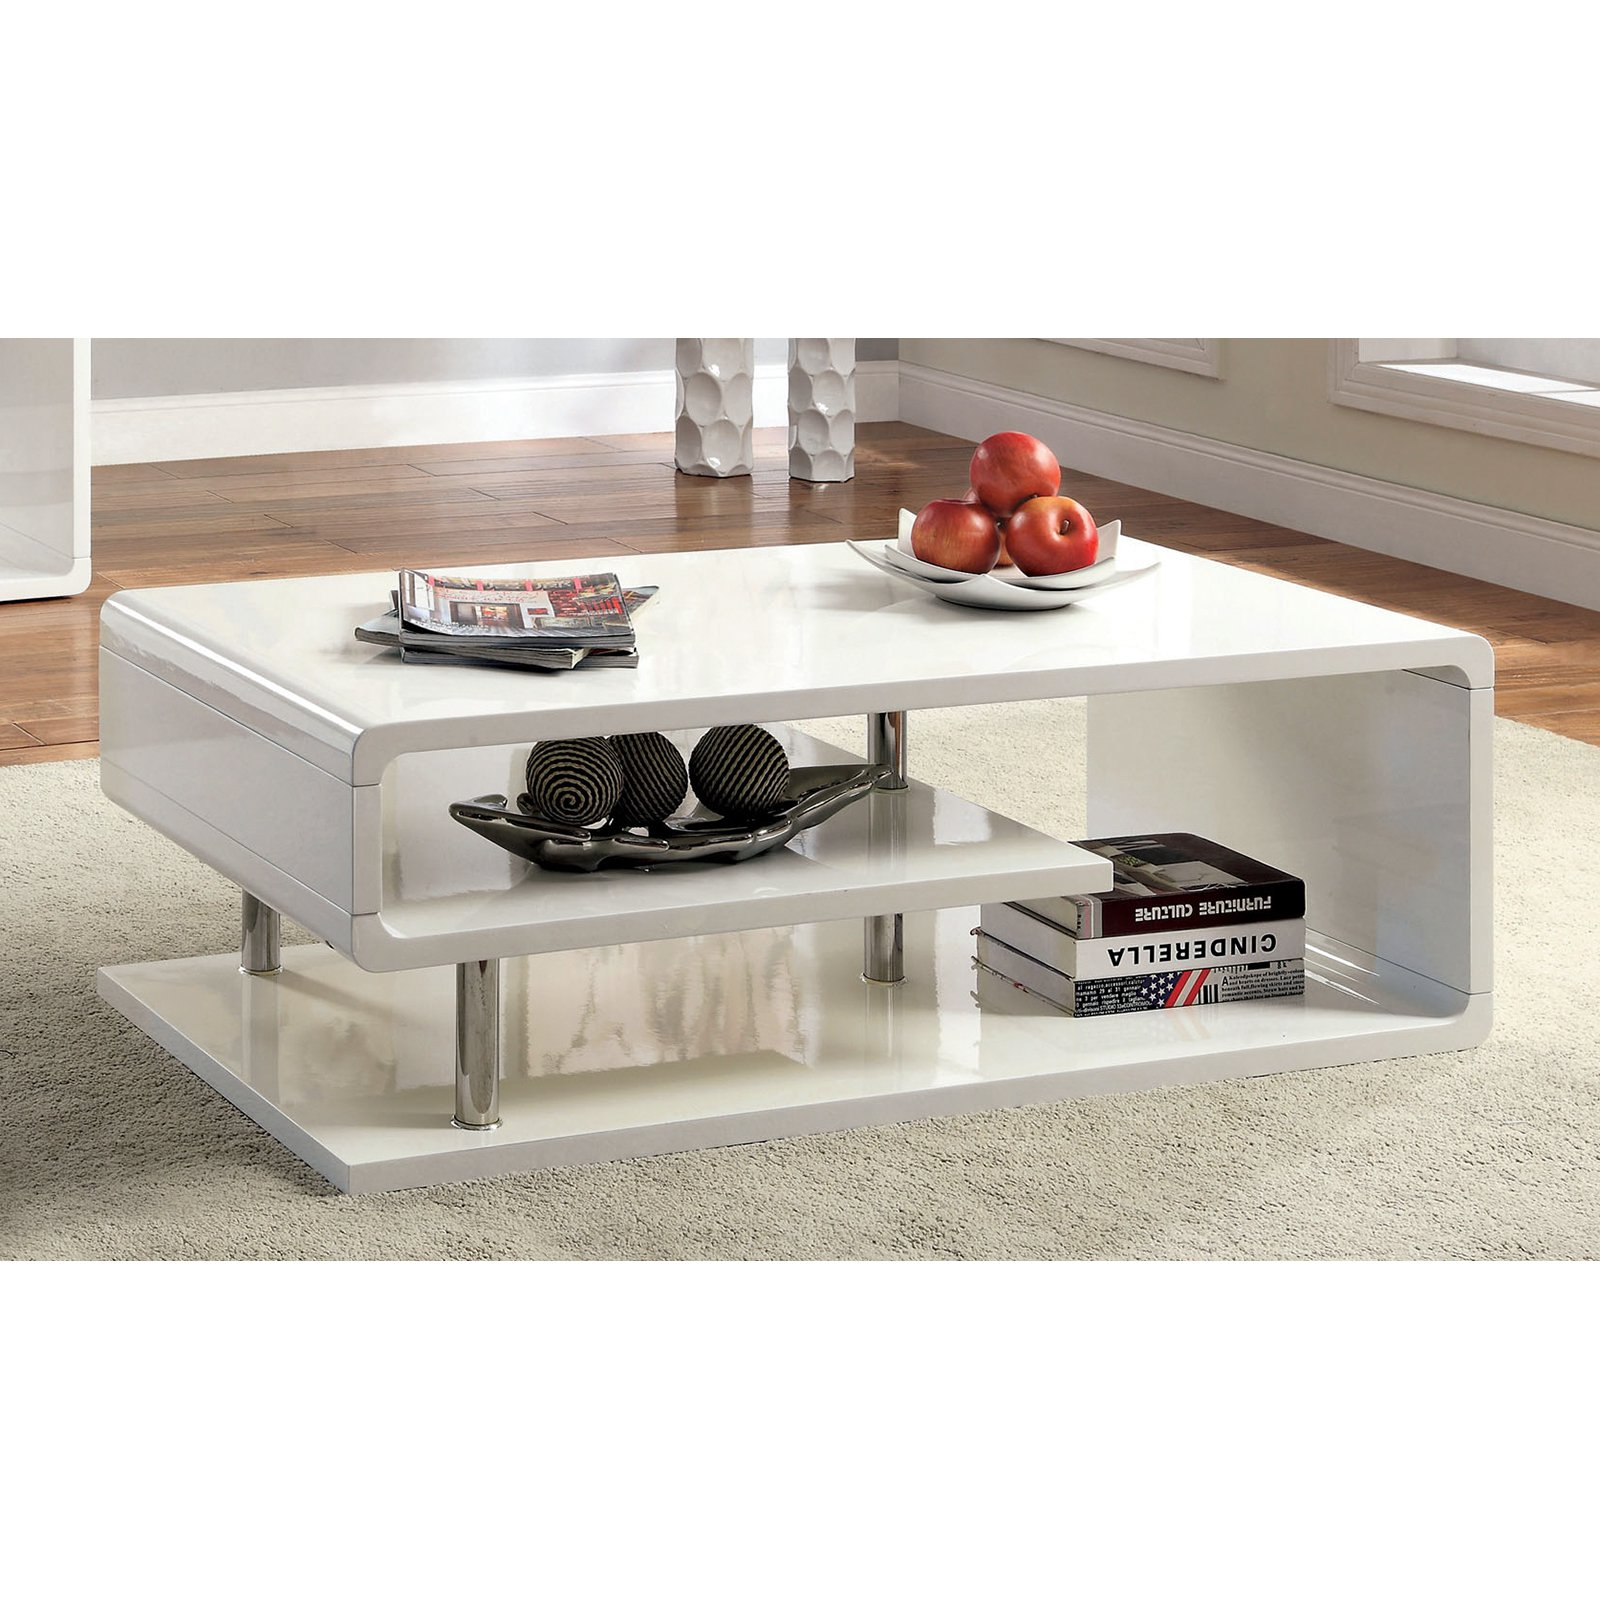 Furniture of America Rocca Modern Tier Coffee Table - White